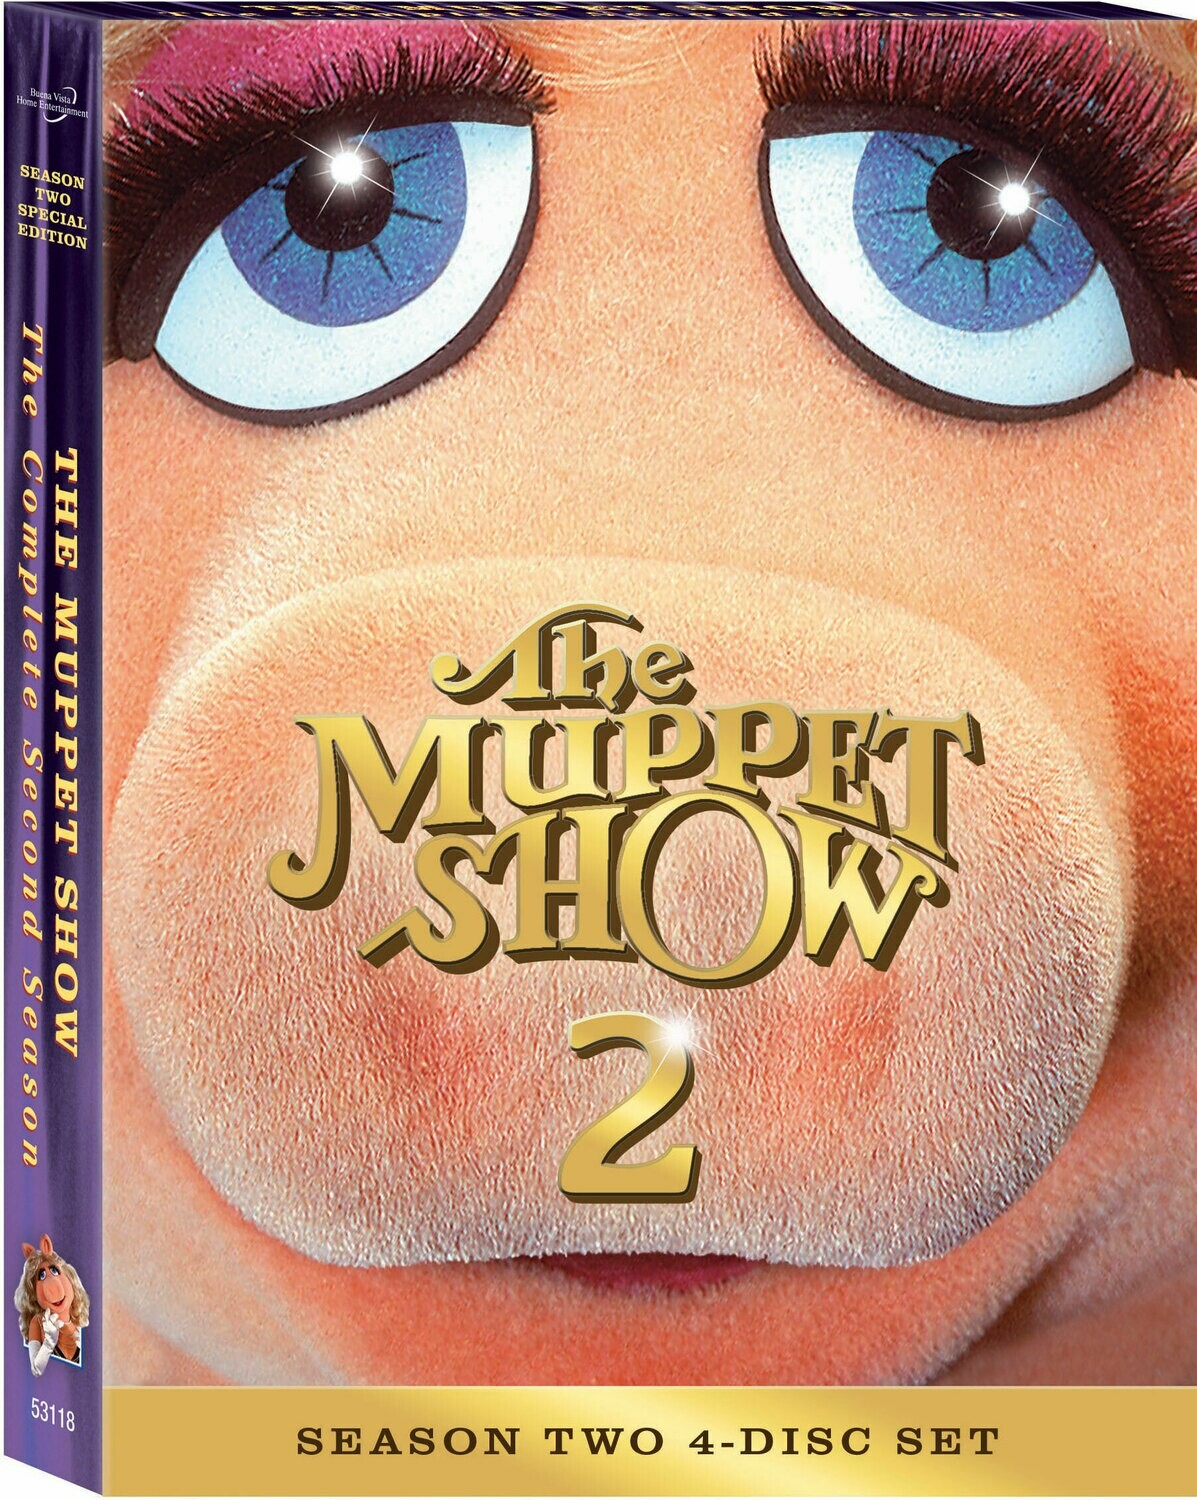 Muppet Show Season Two (7 day rental)